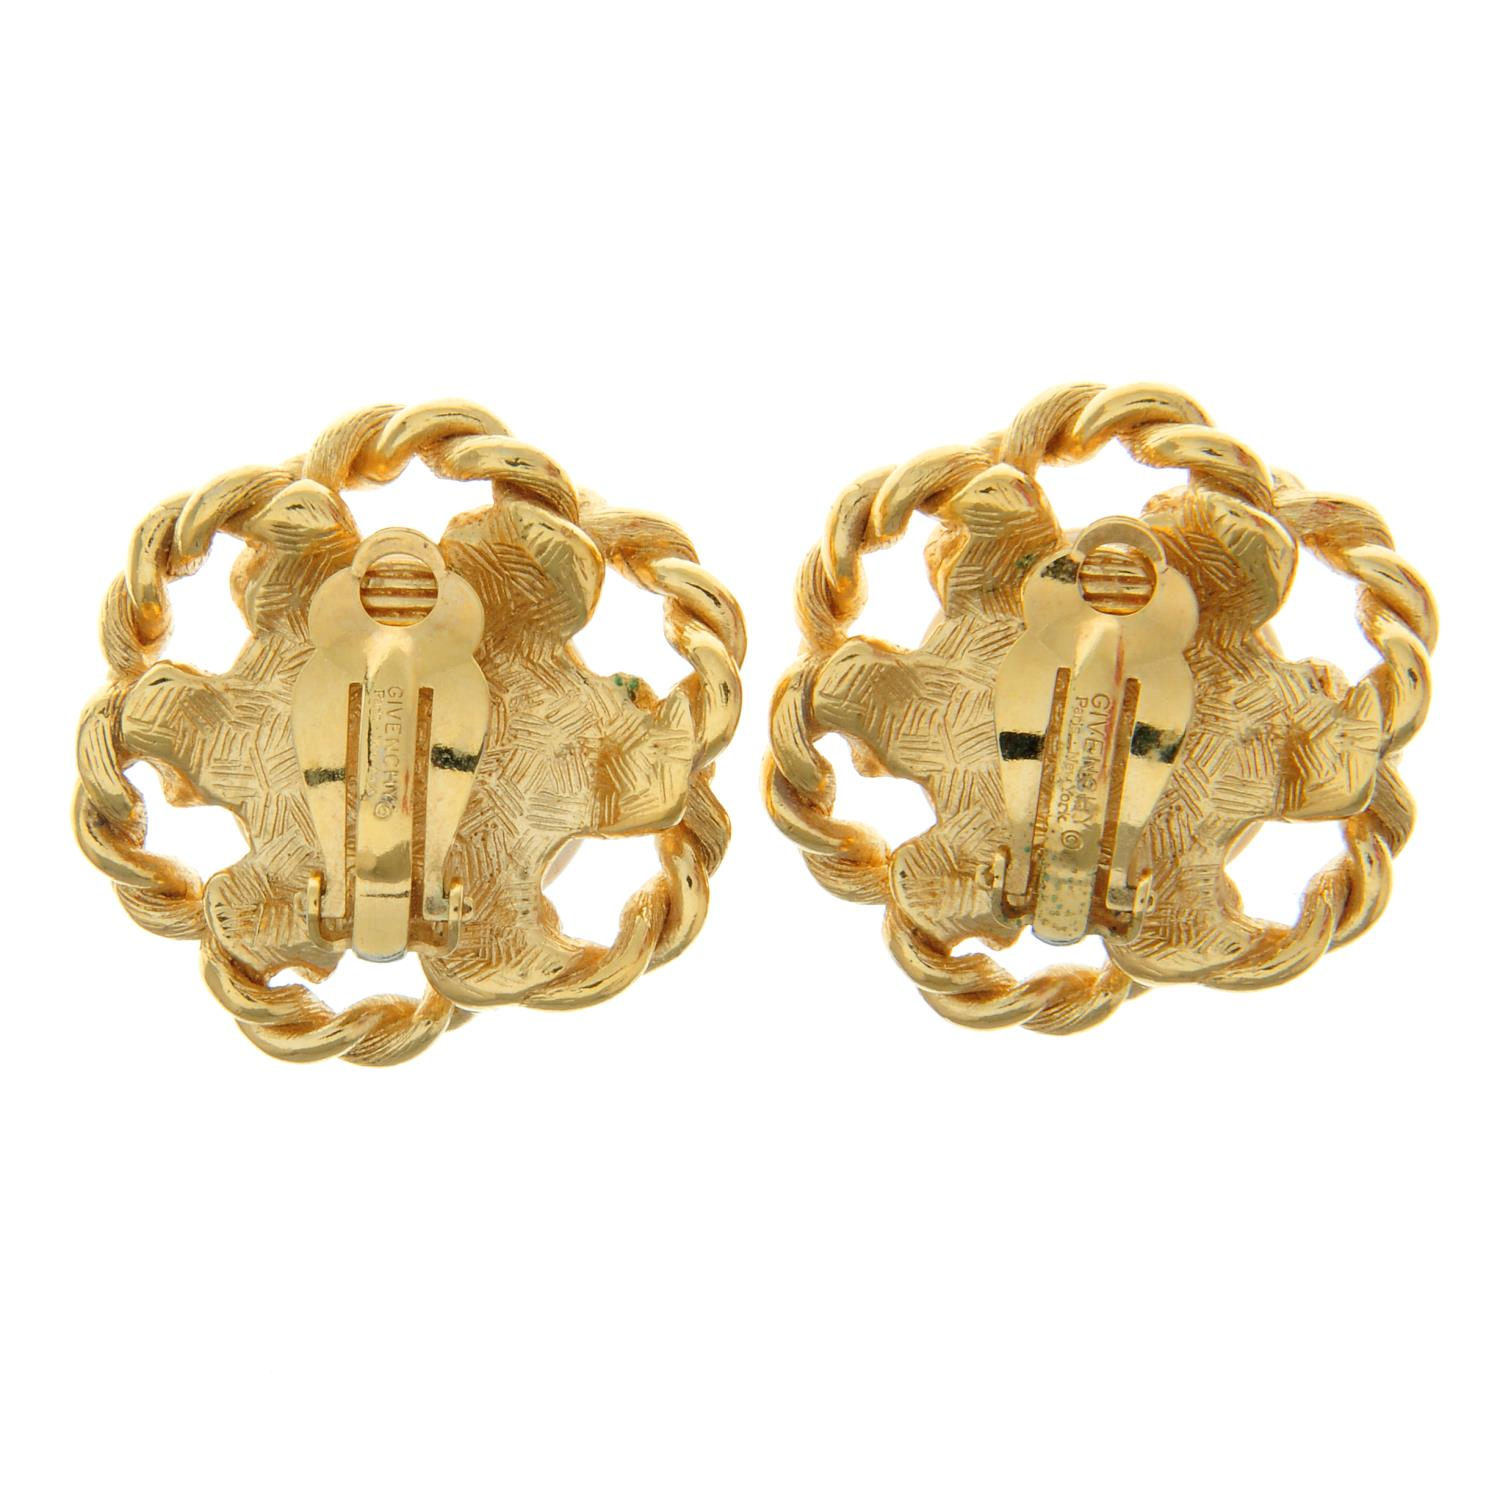 A pair of imitation pearl clip-on earrings with a rope textured floral surround, - Image 2 of 2